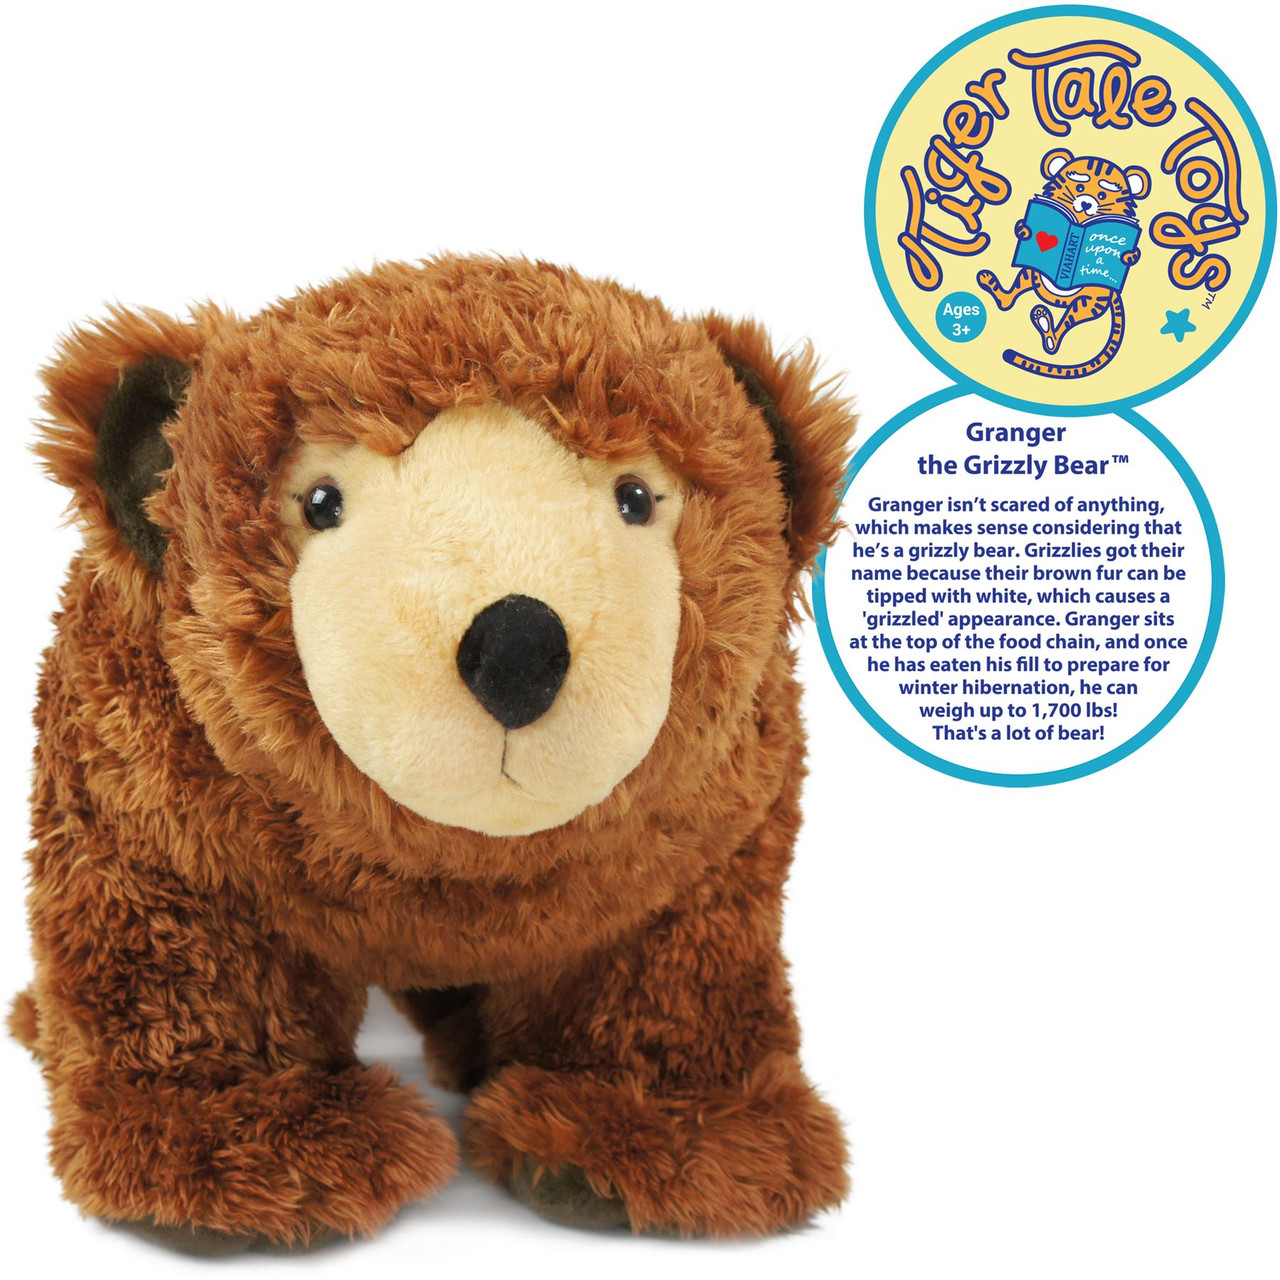 Granger The Grizzly Bear 24 Inch Stuffed Animal Plush Teddy Bear By Tiger Tale Toys Viahart Toy Co